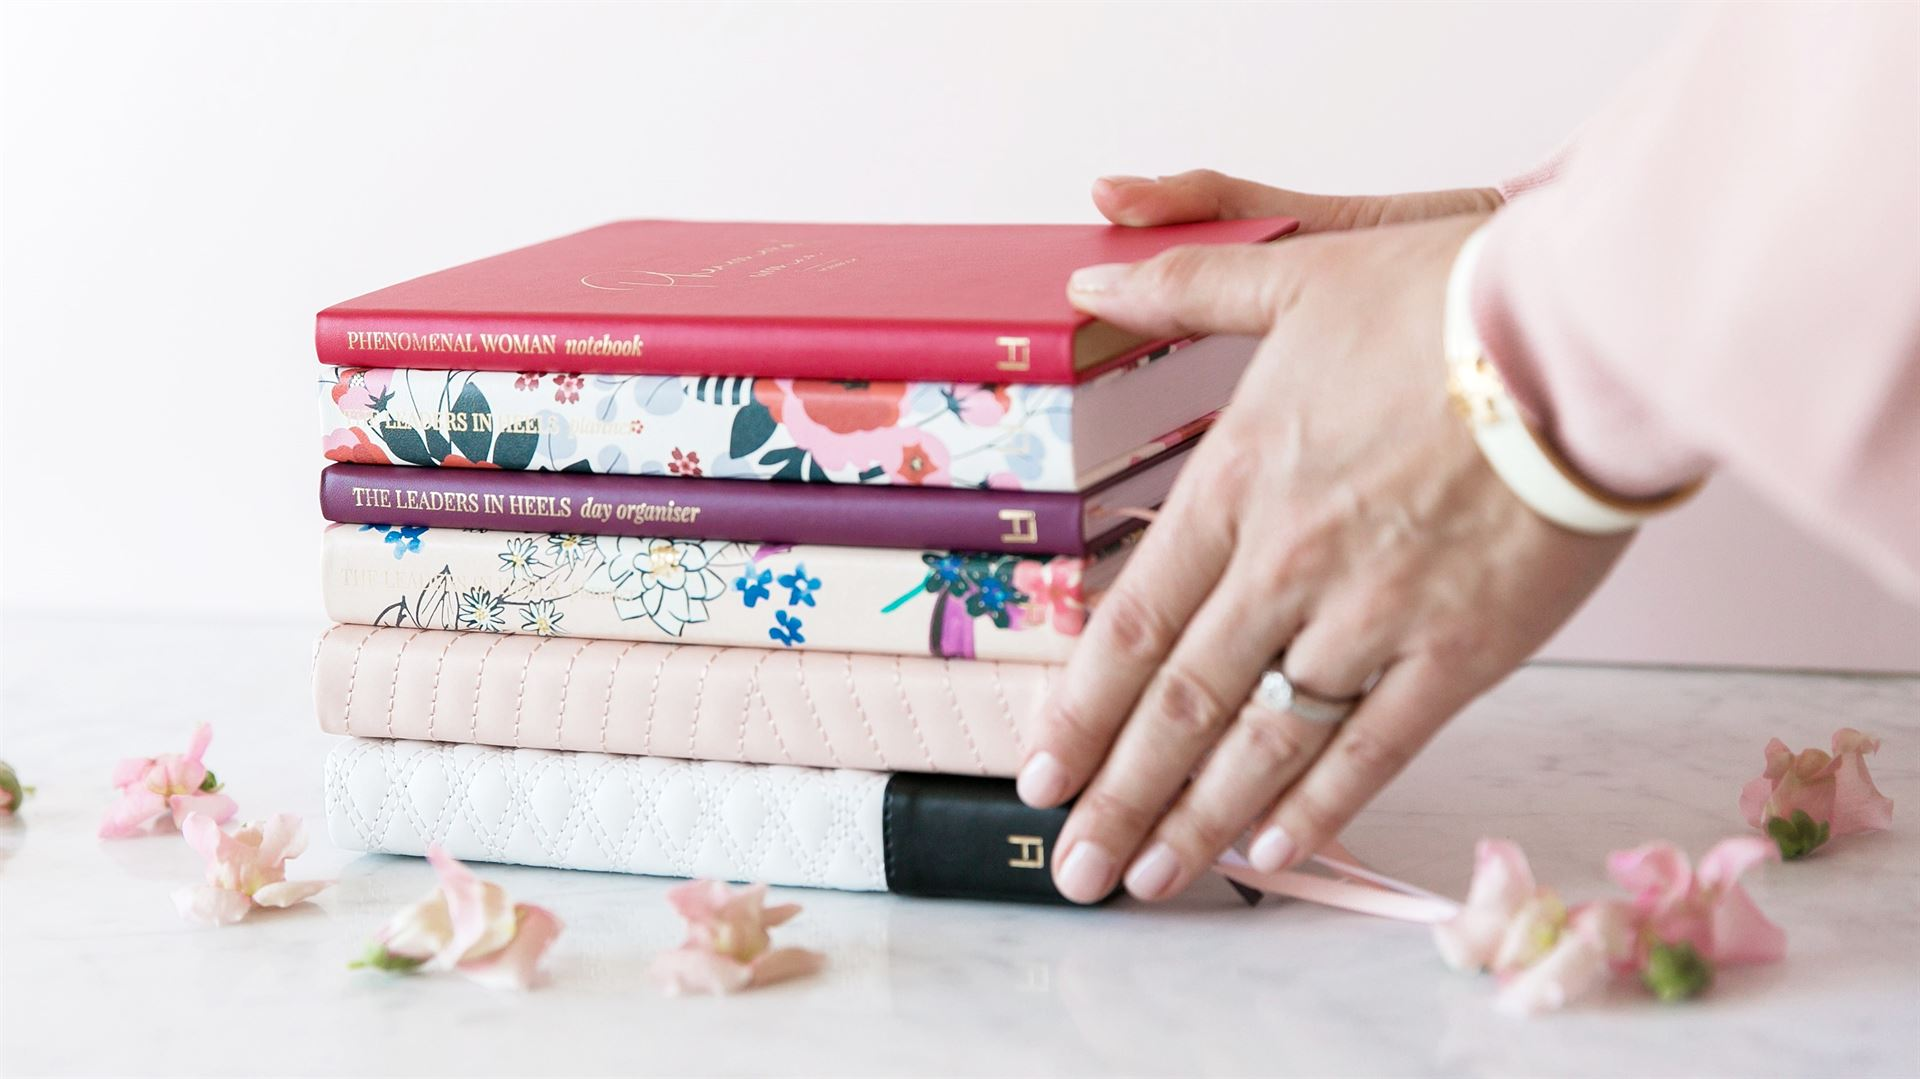 Inspirational stationery, inspirational notebooks, inspirational planners and journals